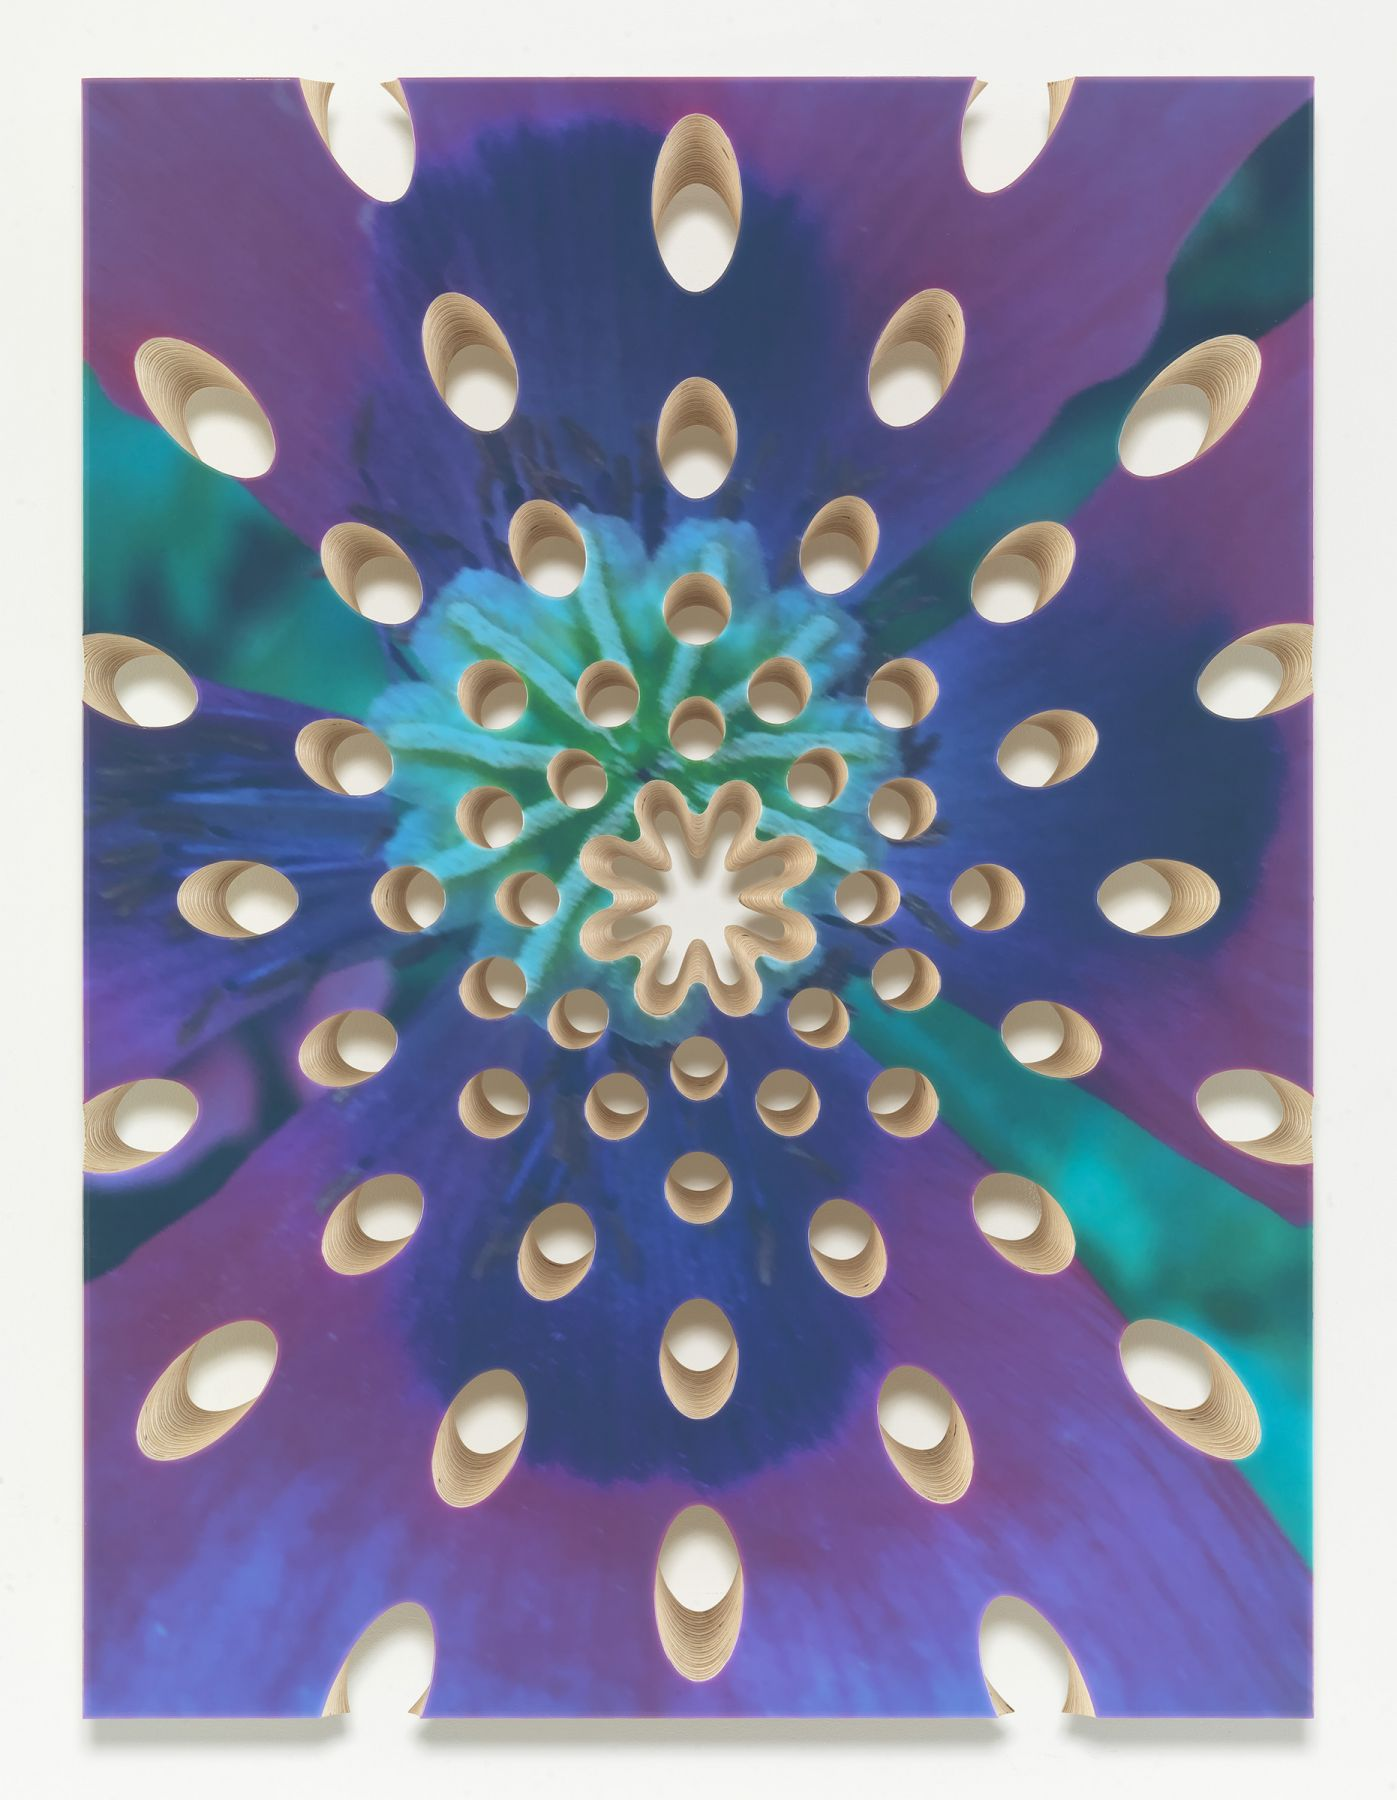 a resin painting by donald moffett in purples and blues reminisicent of a flower